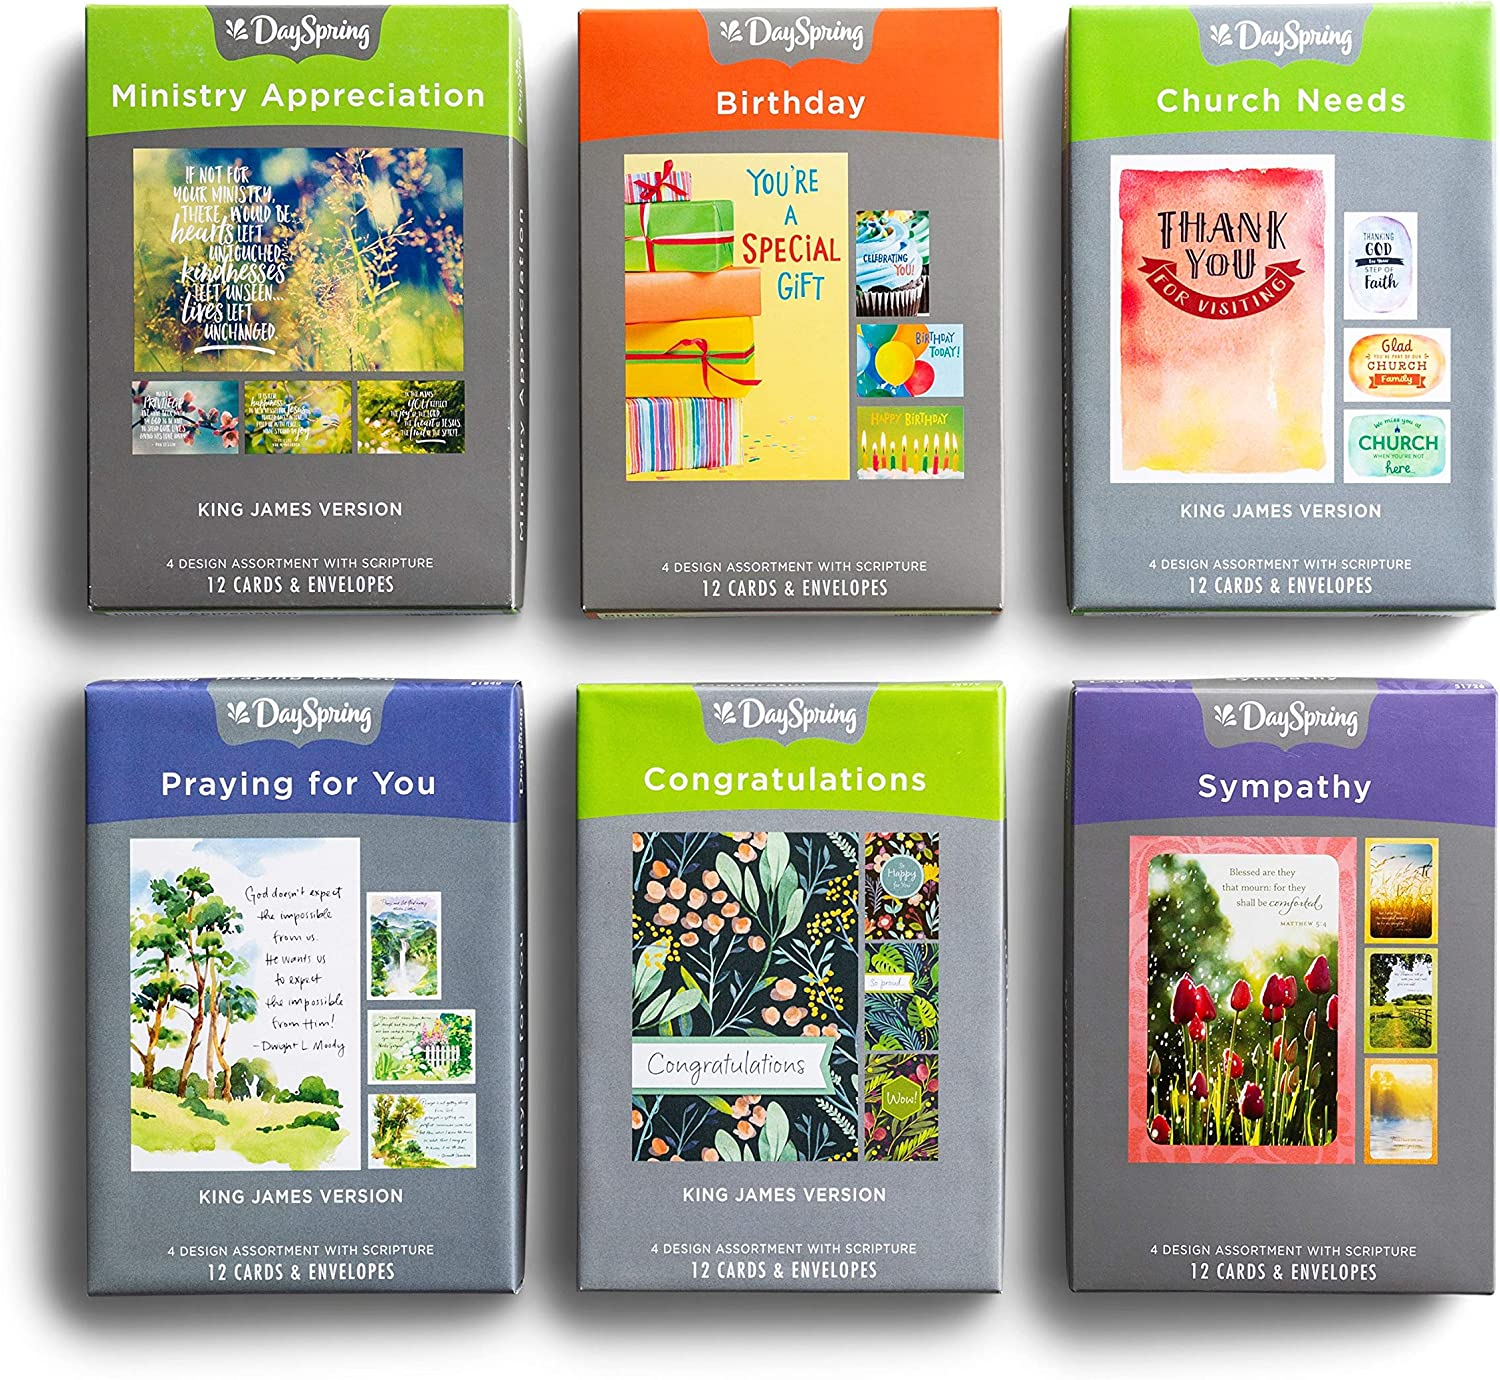 DaySpring Ministry Needs - Bundle of Car Total Cards 72 6 discount Boxed Year-end gift